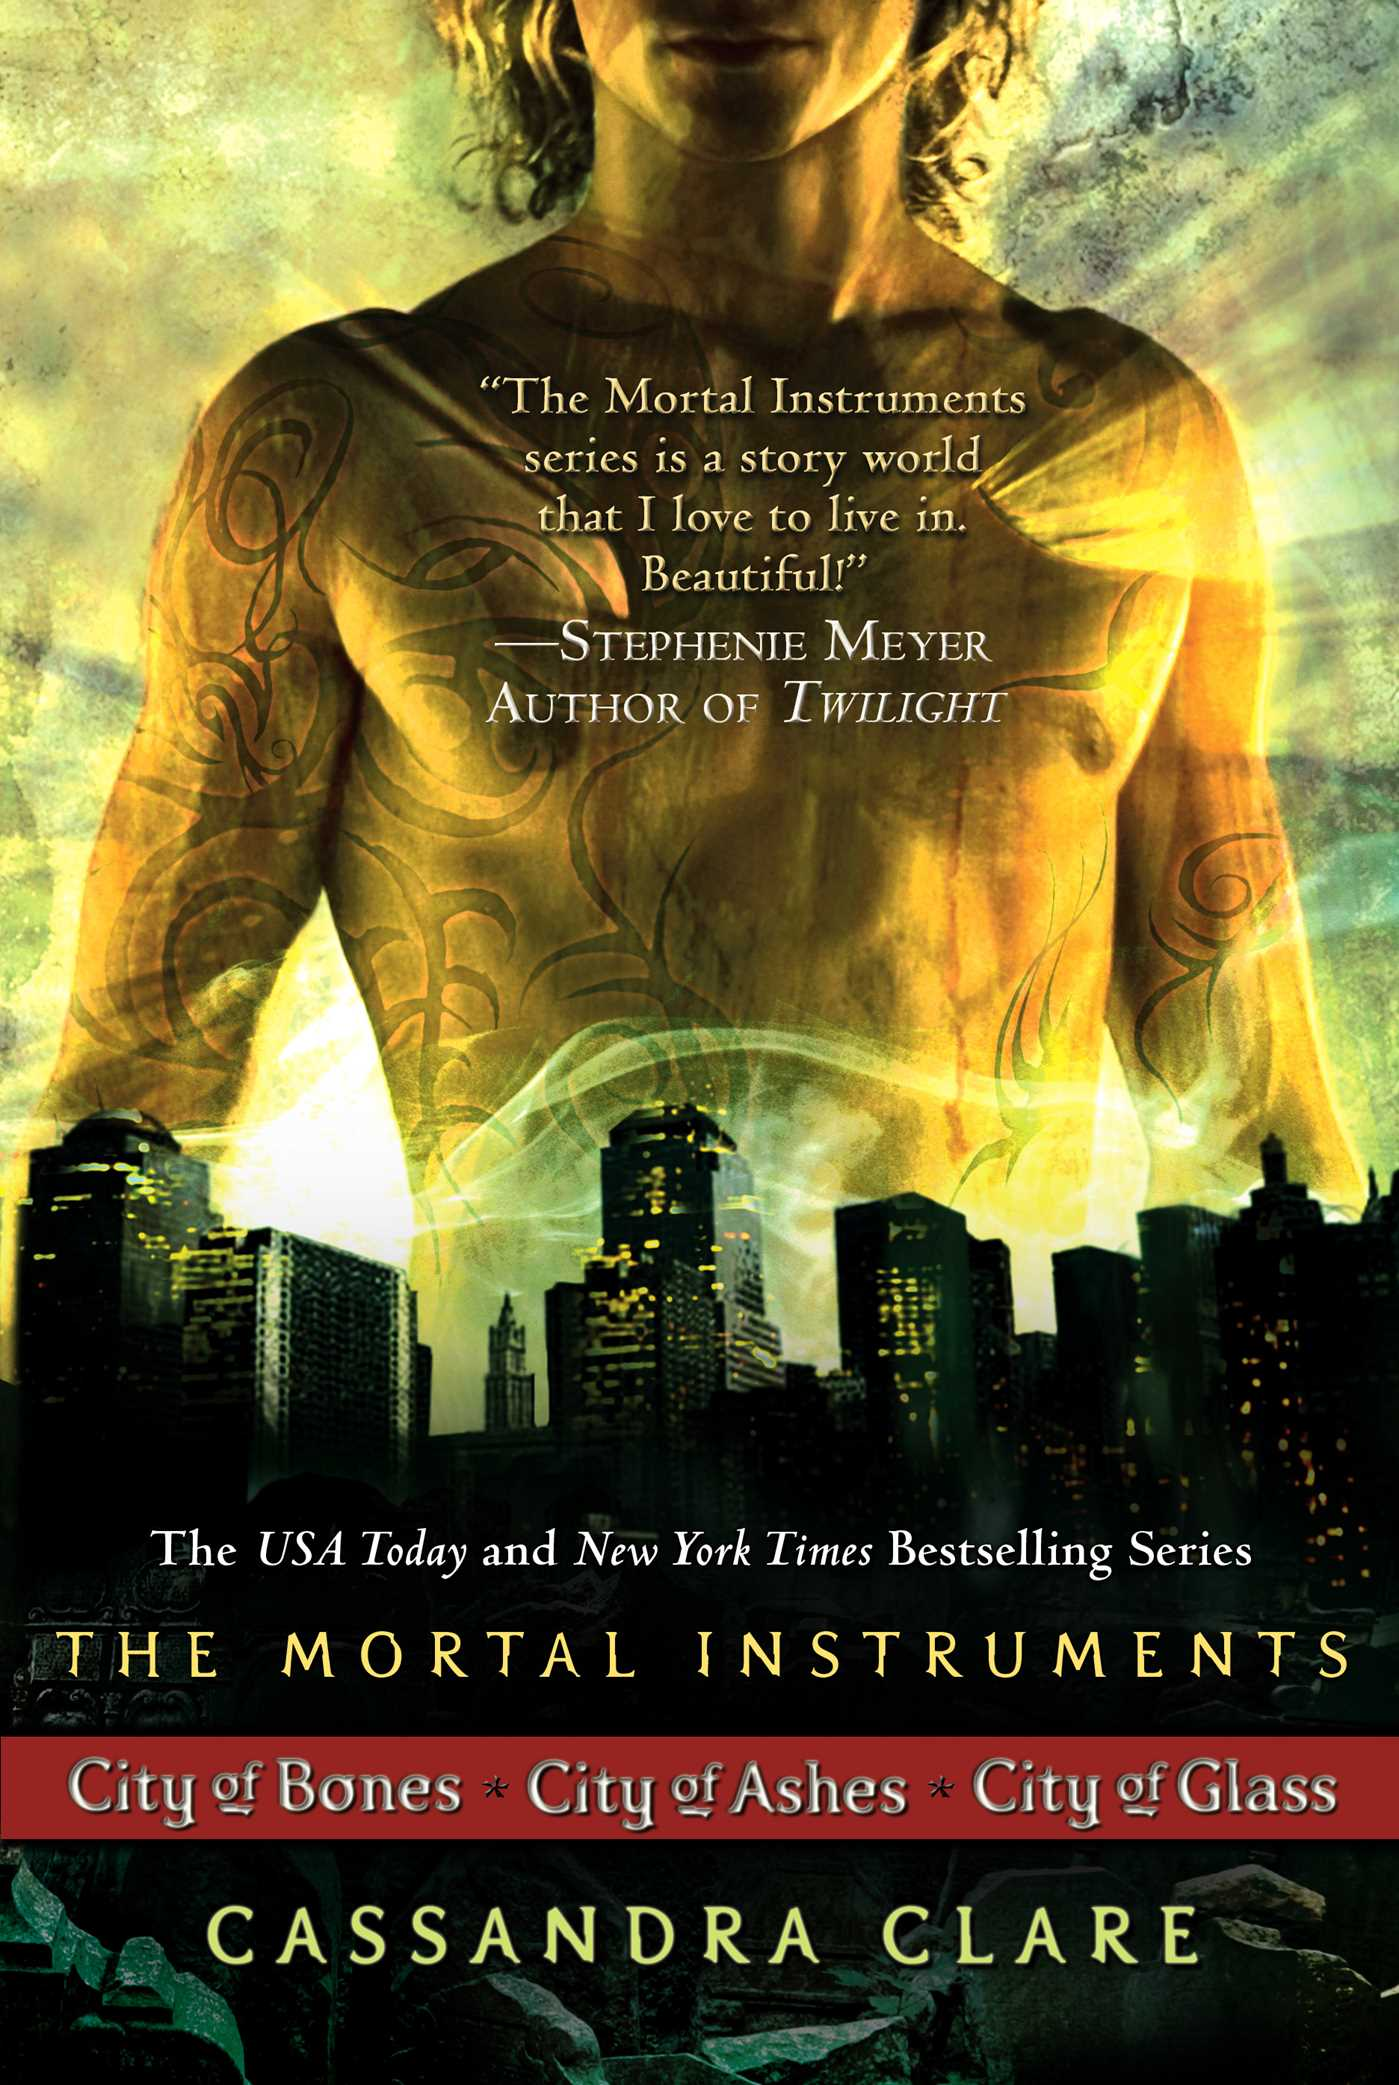 Cassandra-clare-the-mortal-instrument-series-(3-9781442430044_hr